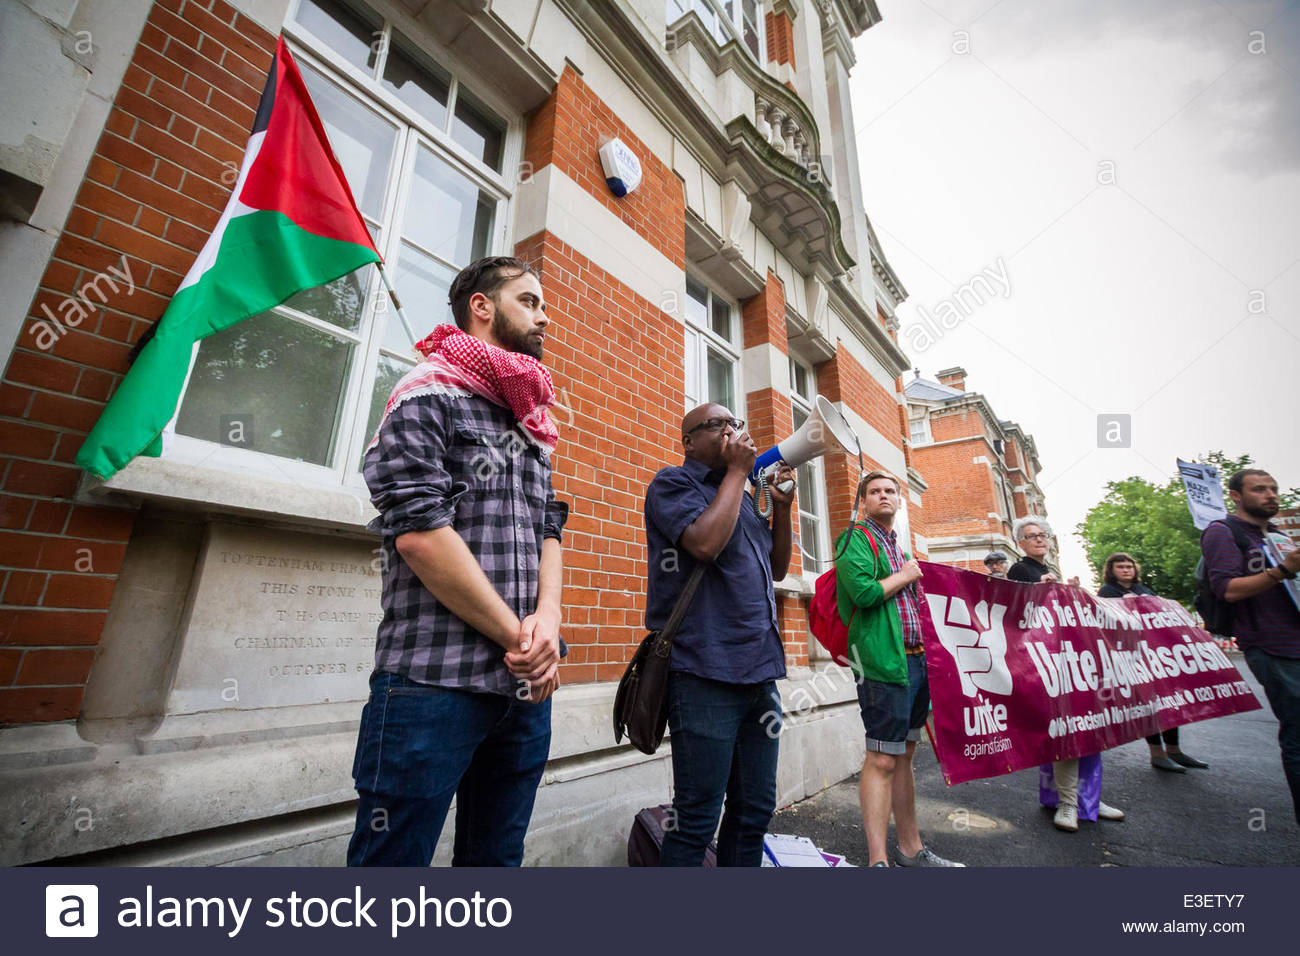 London, UK. 23rd June, 2014. Unite Against Fascism protest vigil against 'Polish Neo-Nazi' attacks in Tottenham, Stock Photo